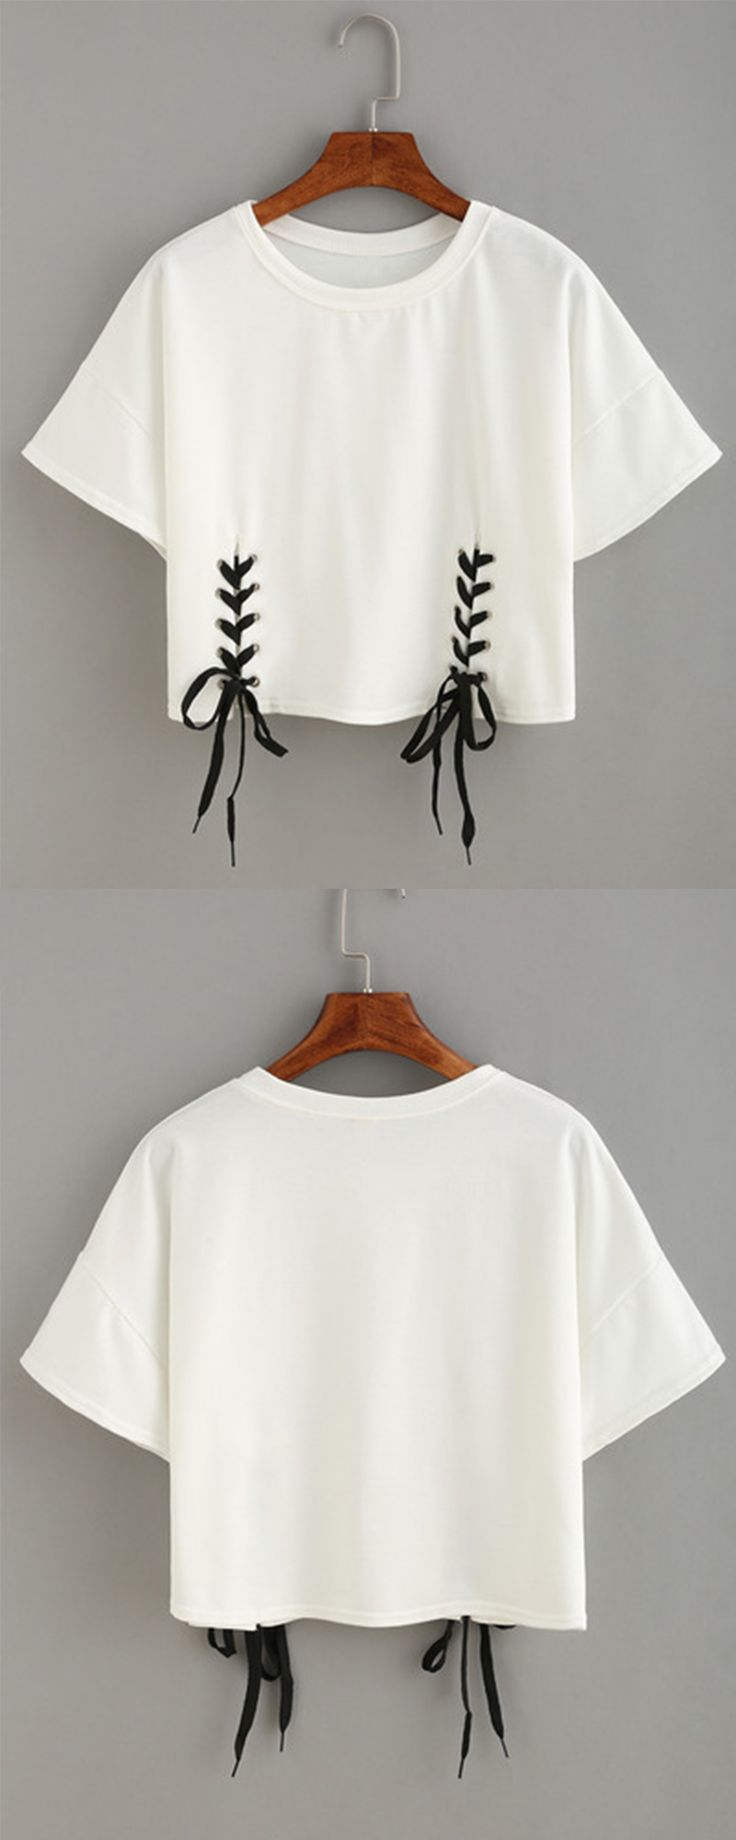 Double Lace-Up Hem Crop T-shirt                              …